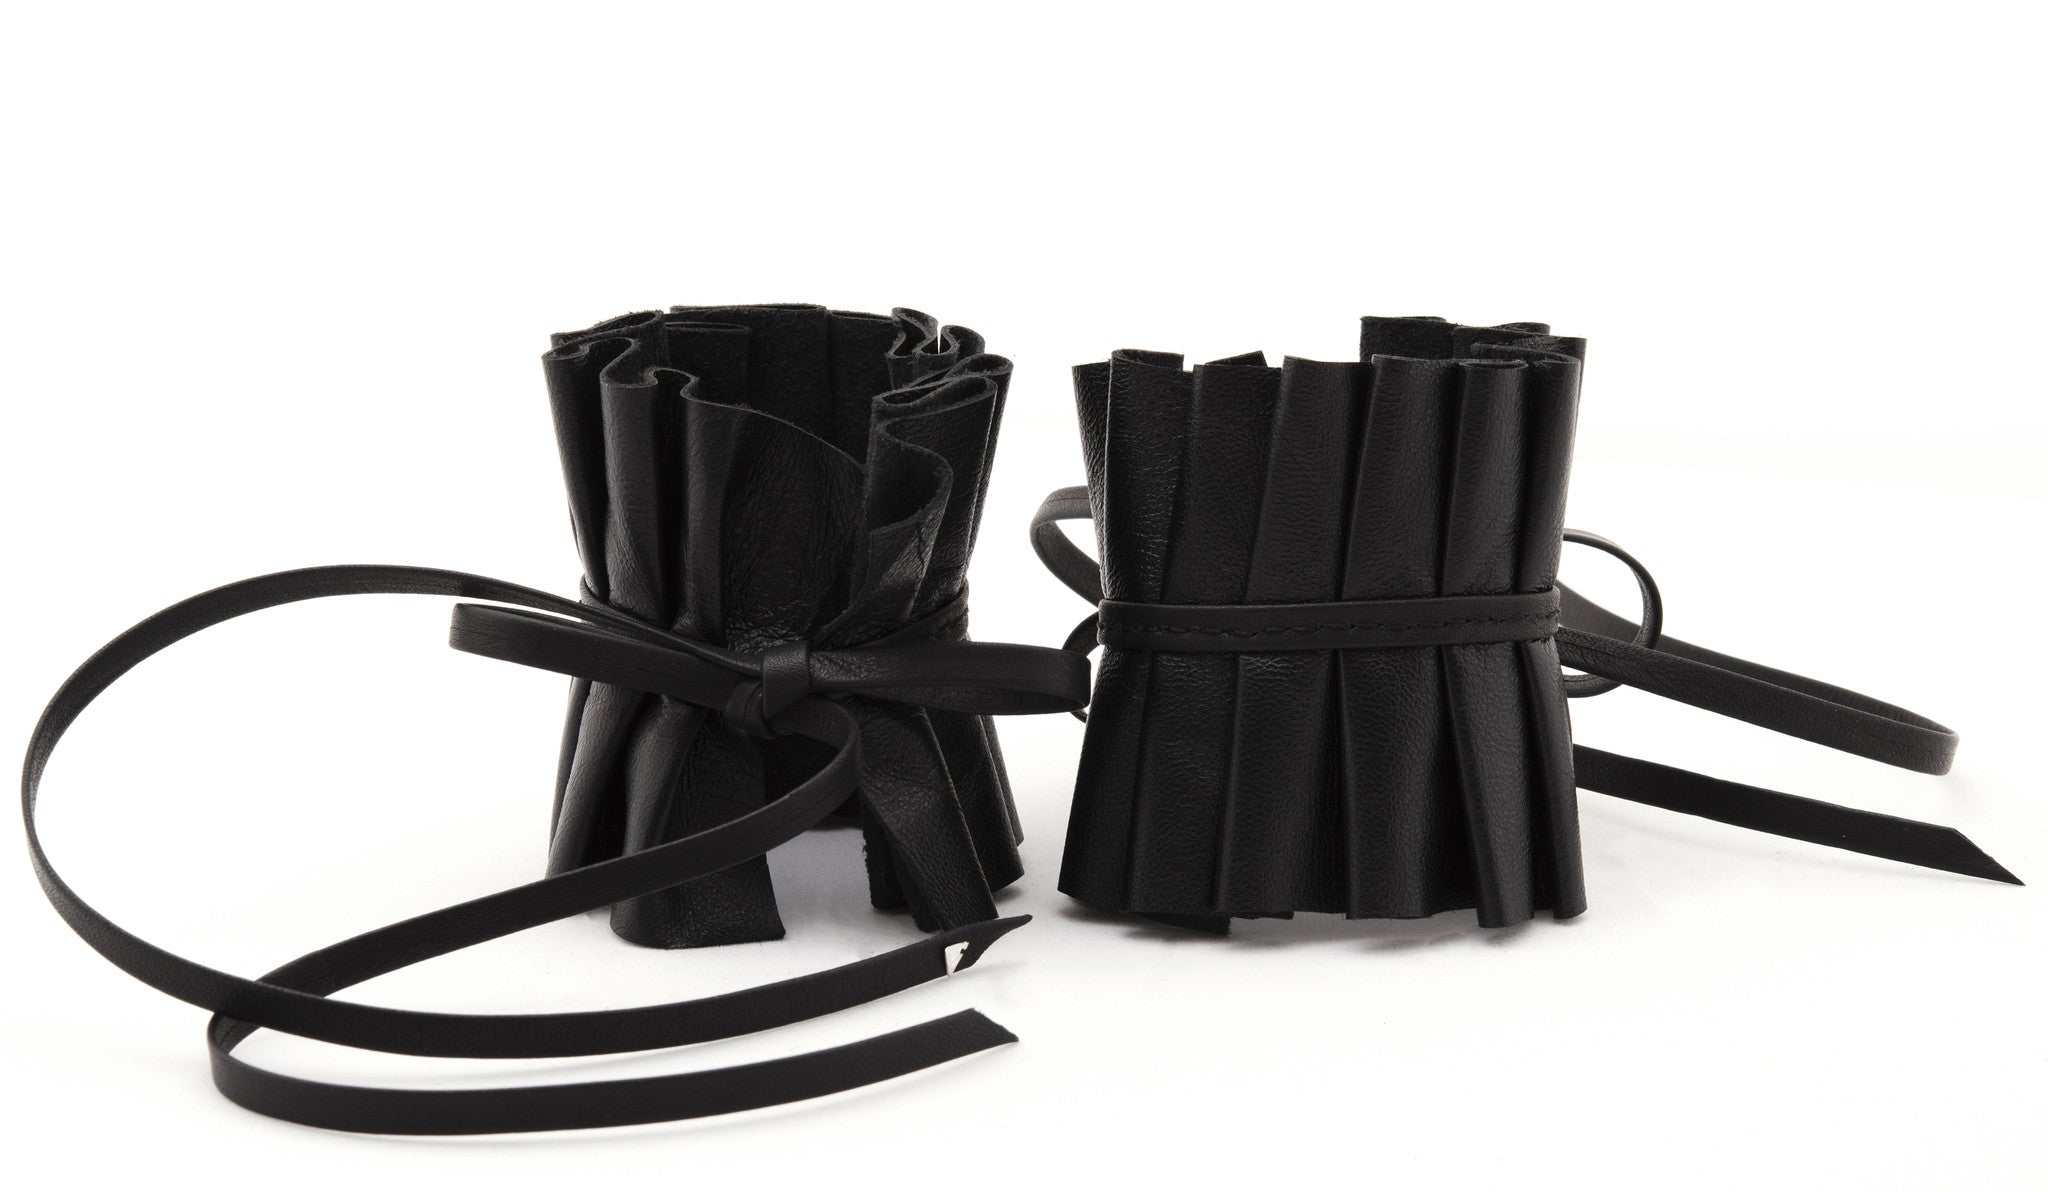 Edwardian Pleated Black Leather Wrist Cuffs Wendy Nichol Designer Handmade in NYC Victorian Gothic Leather Suede Bow Pleated Cuffs